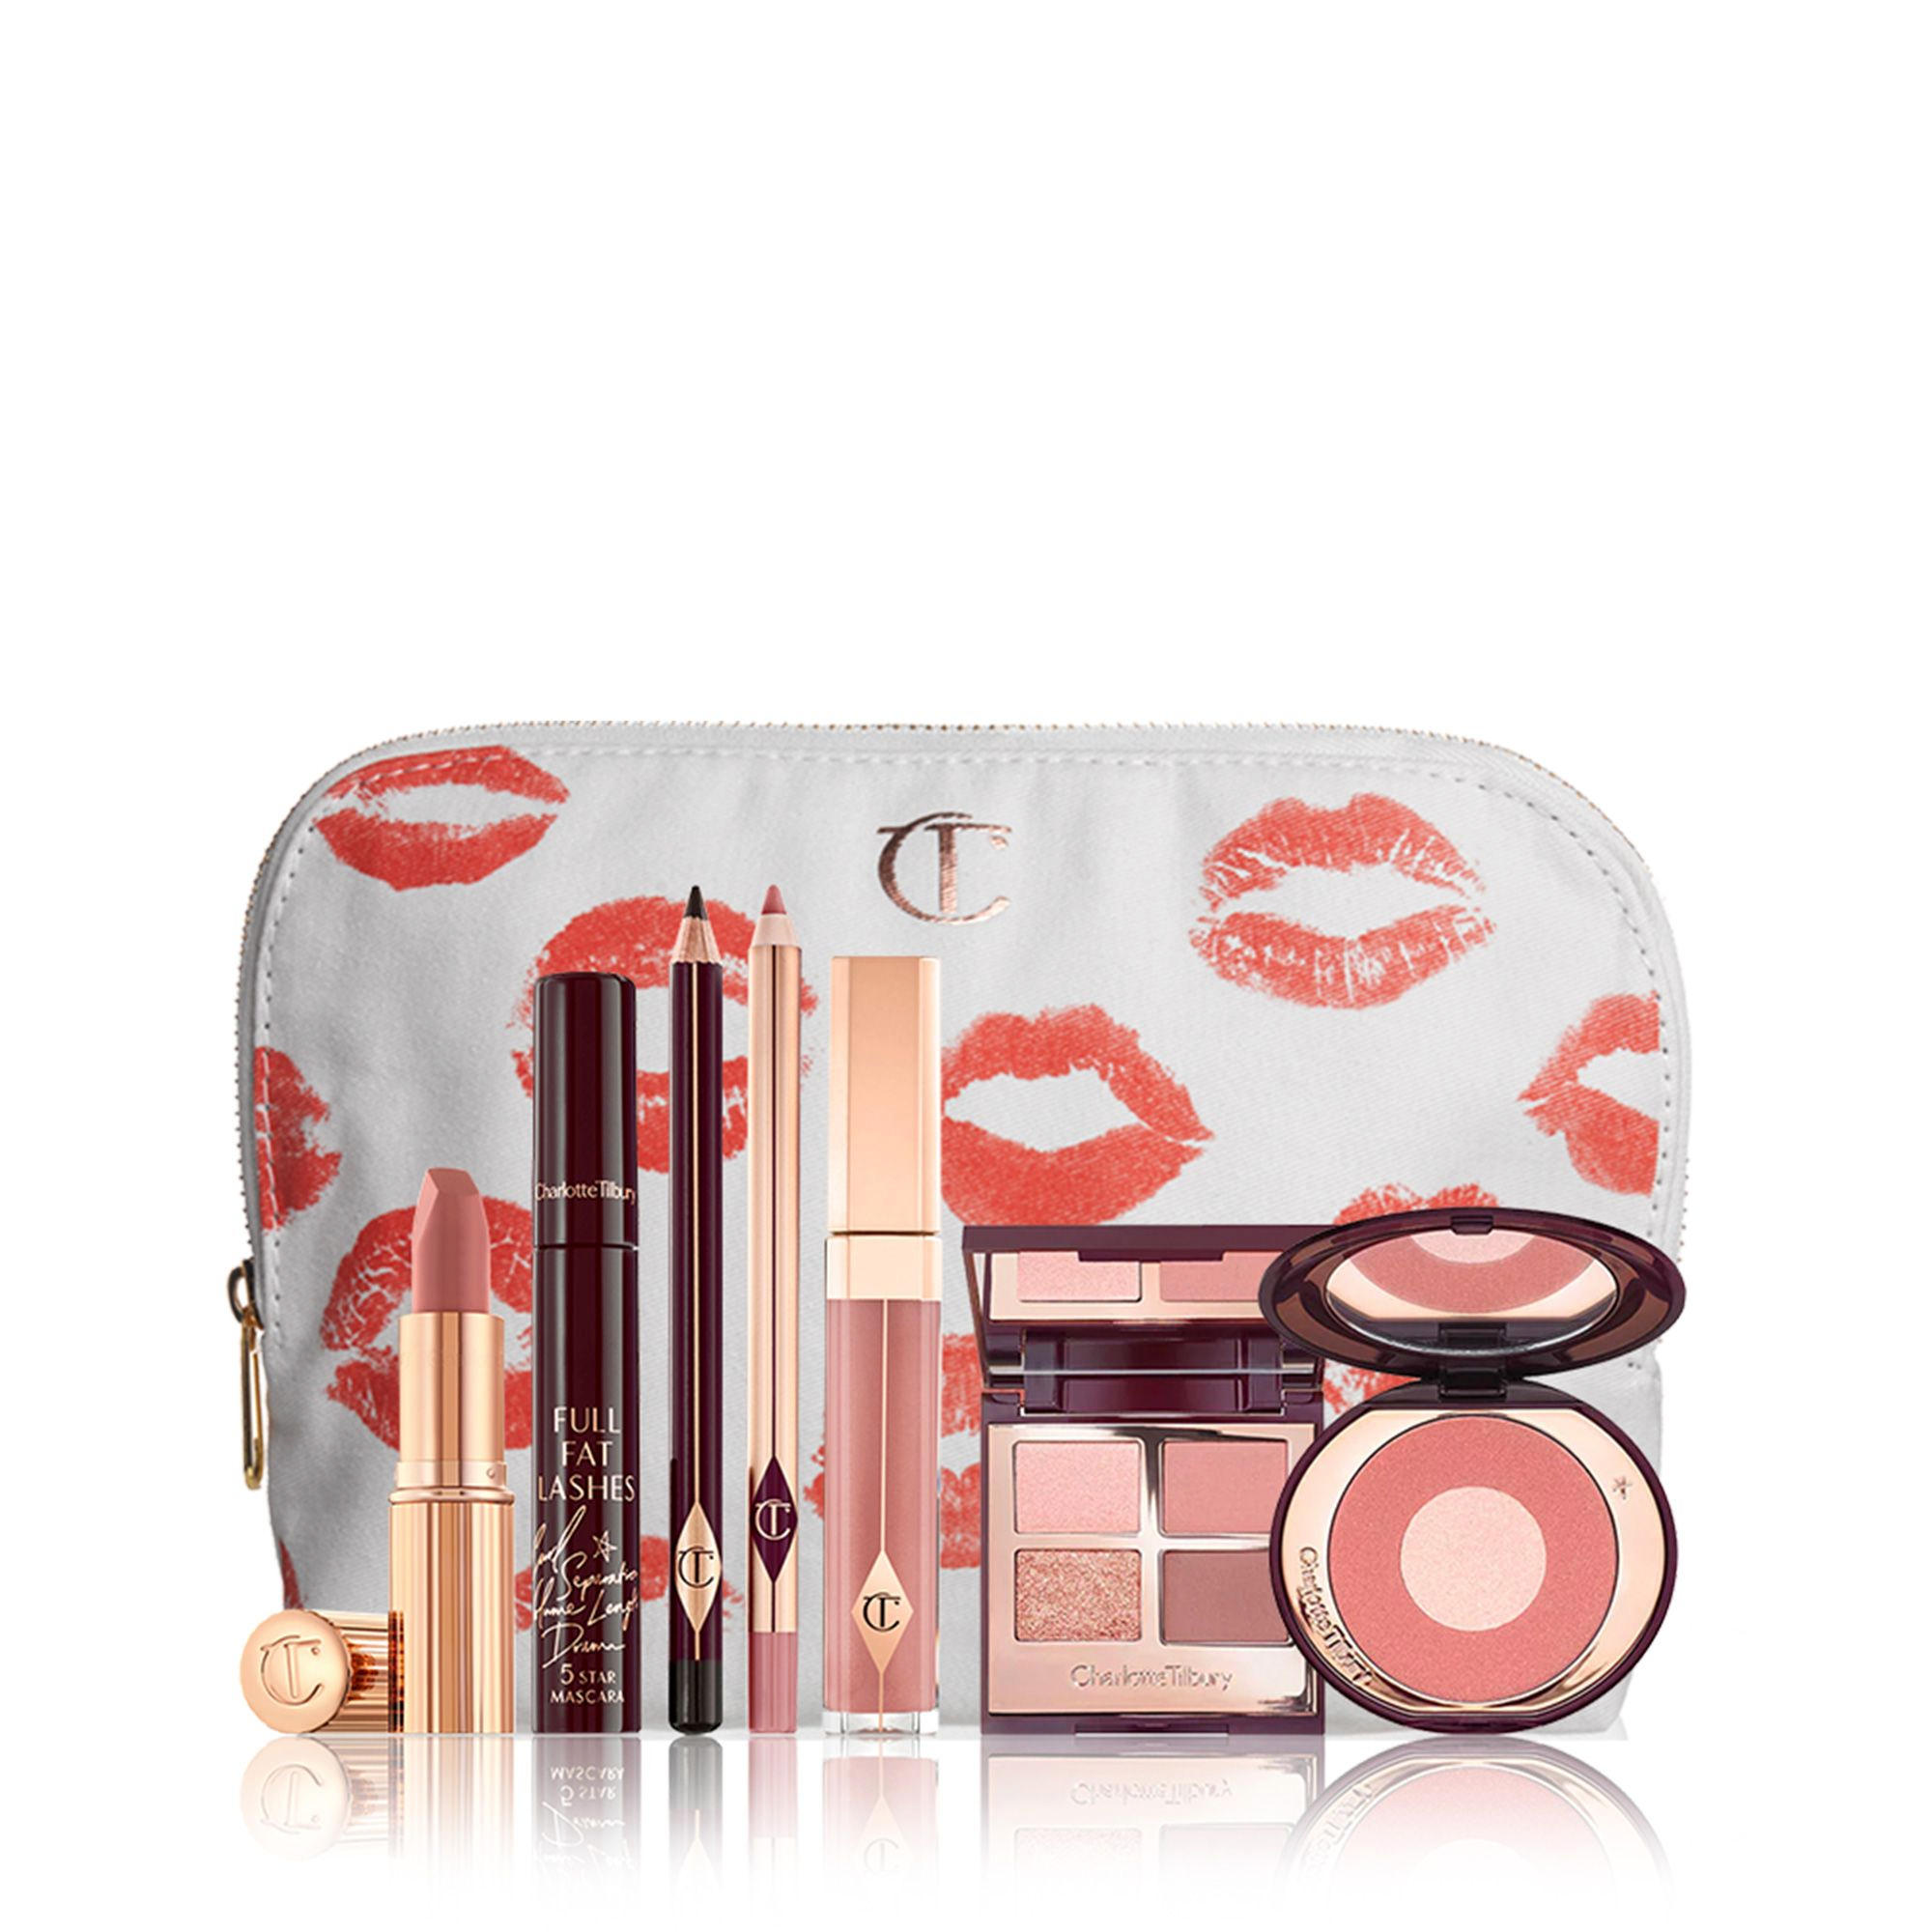 The Pillow Talk Look set is the a perfect Christmas gift for any makeup lover